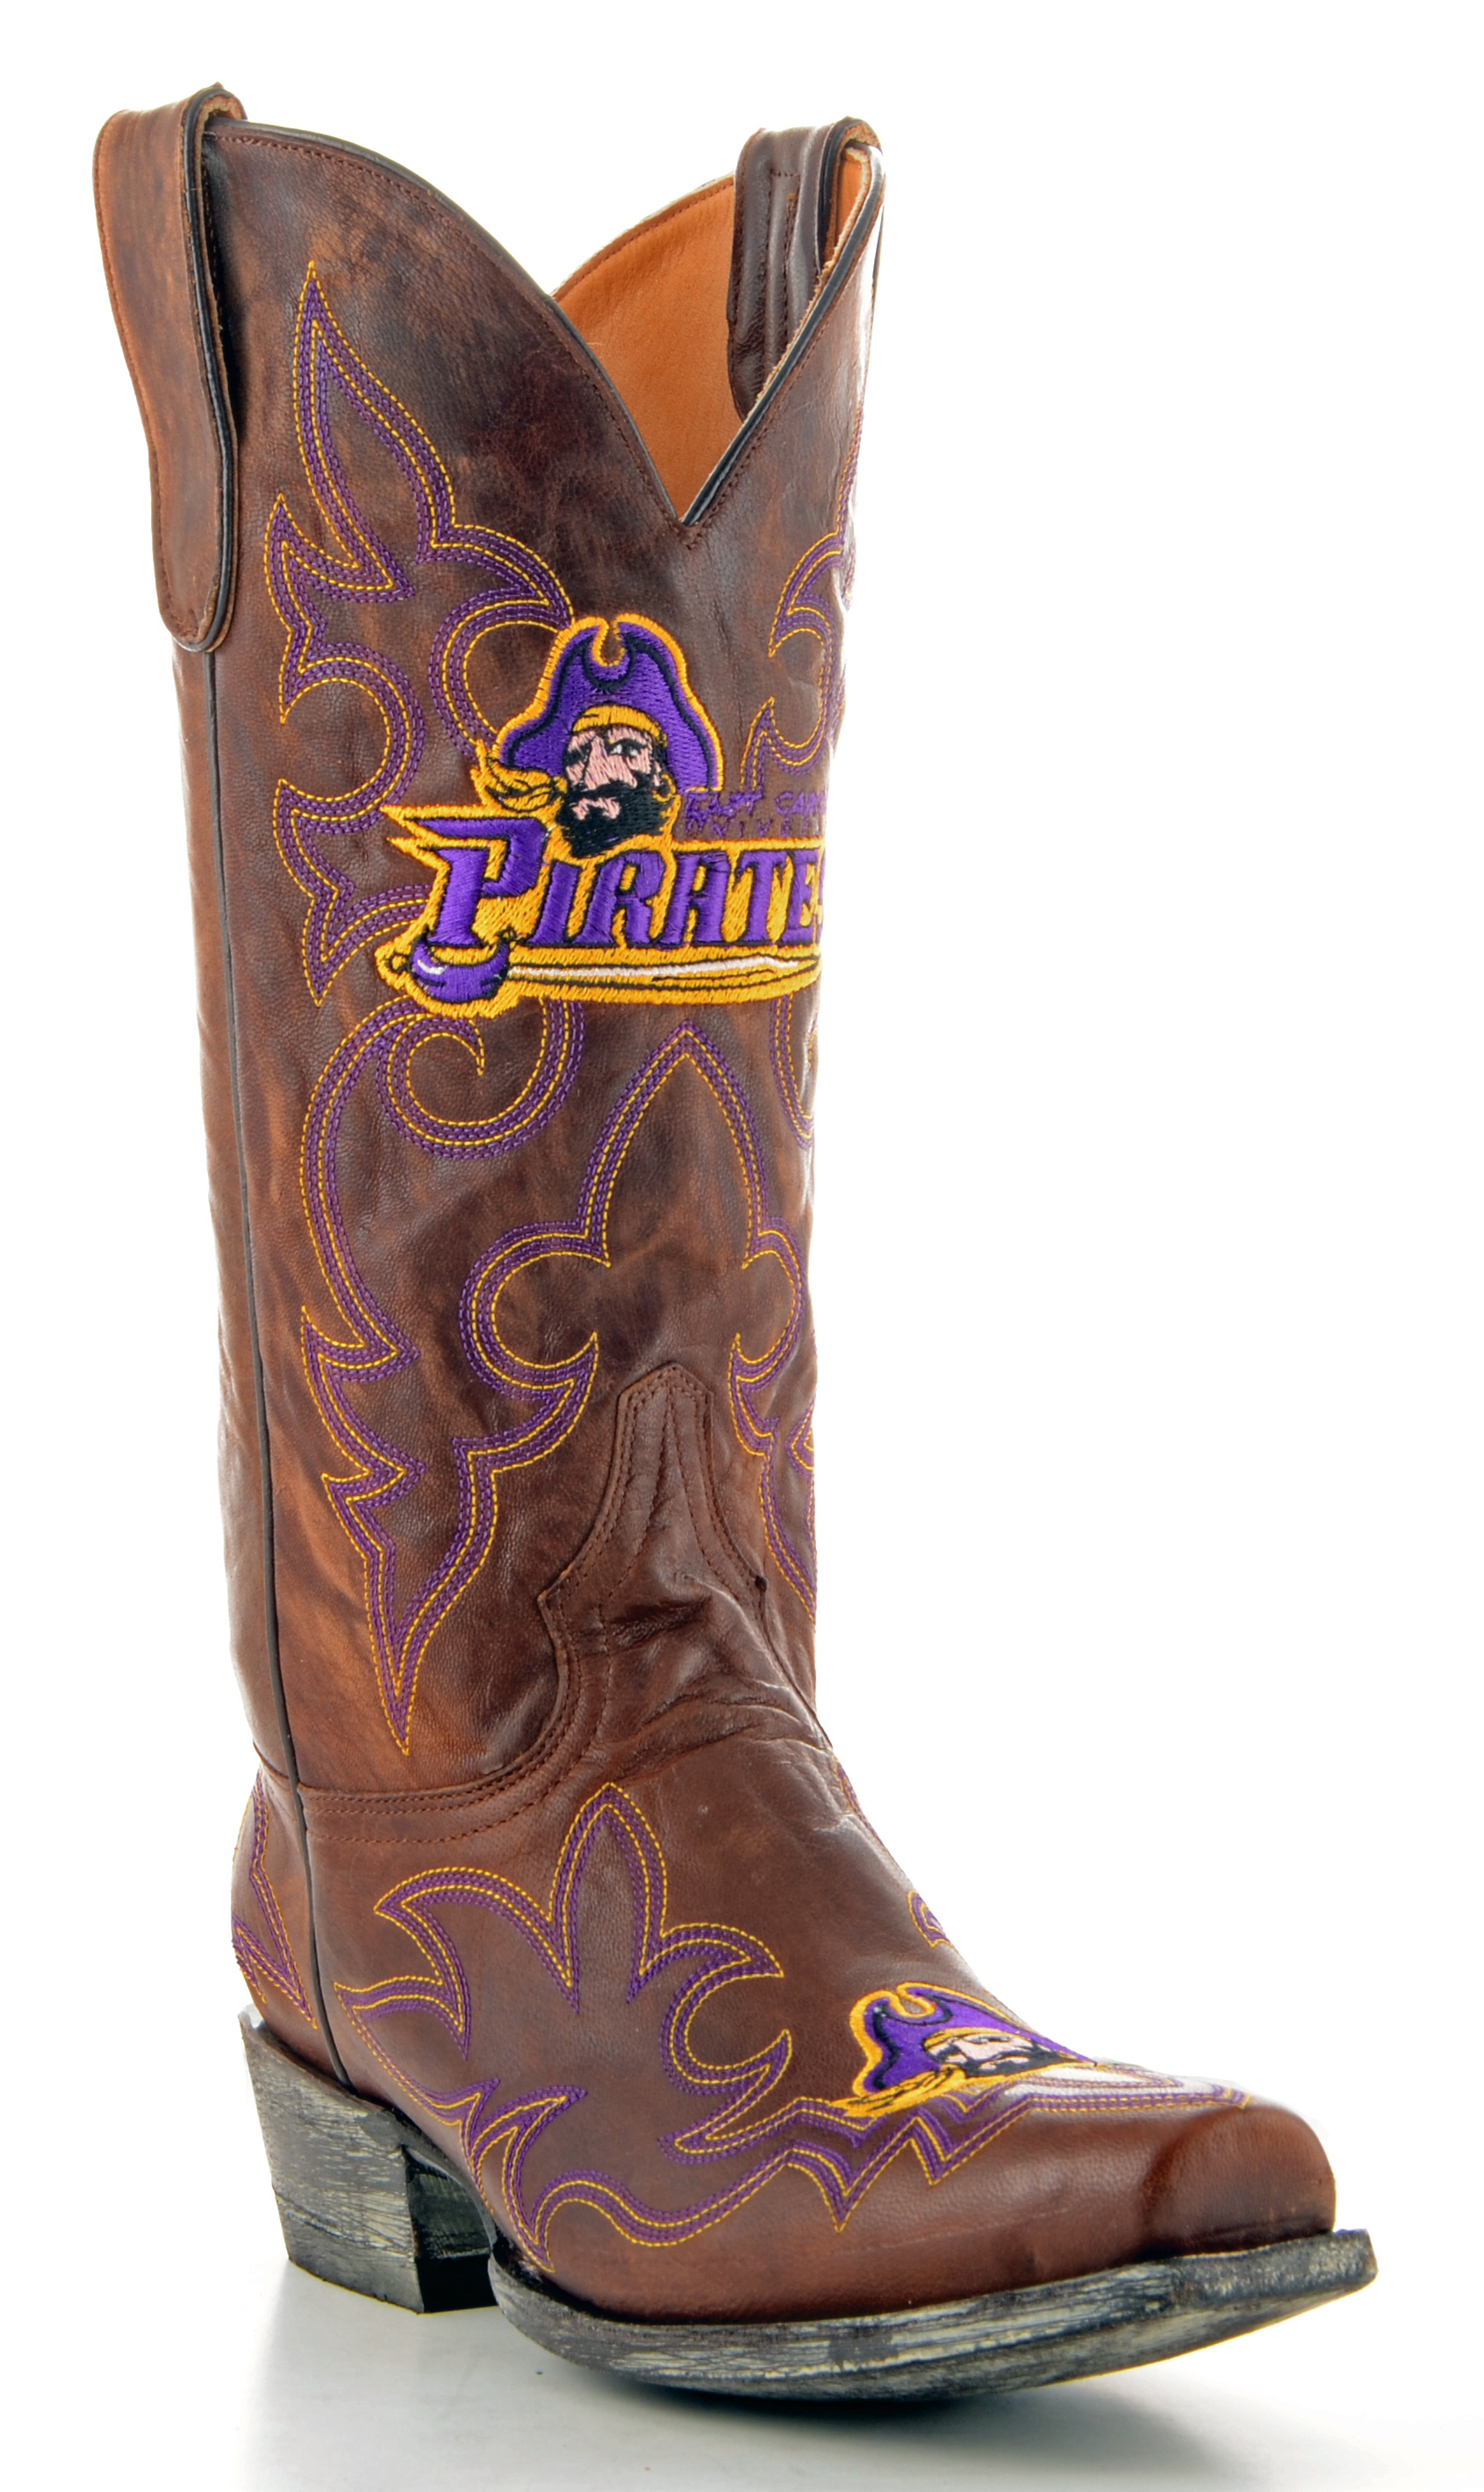 Gameday Boots Mens Brass Leather East Carolina Cowboy Boots (Size 7.5) New by GameDay Boots